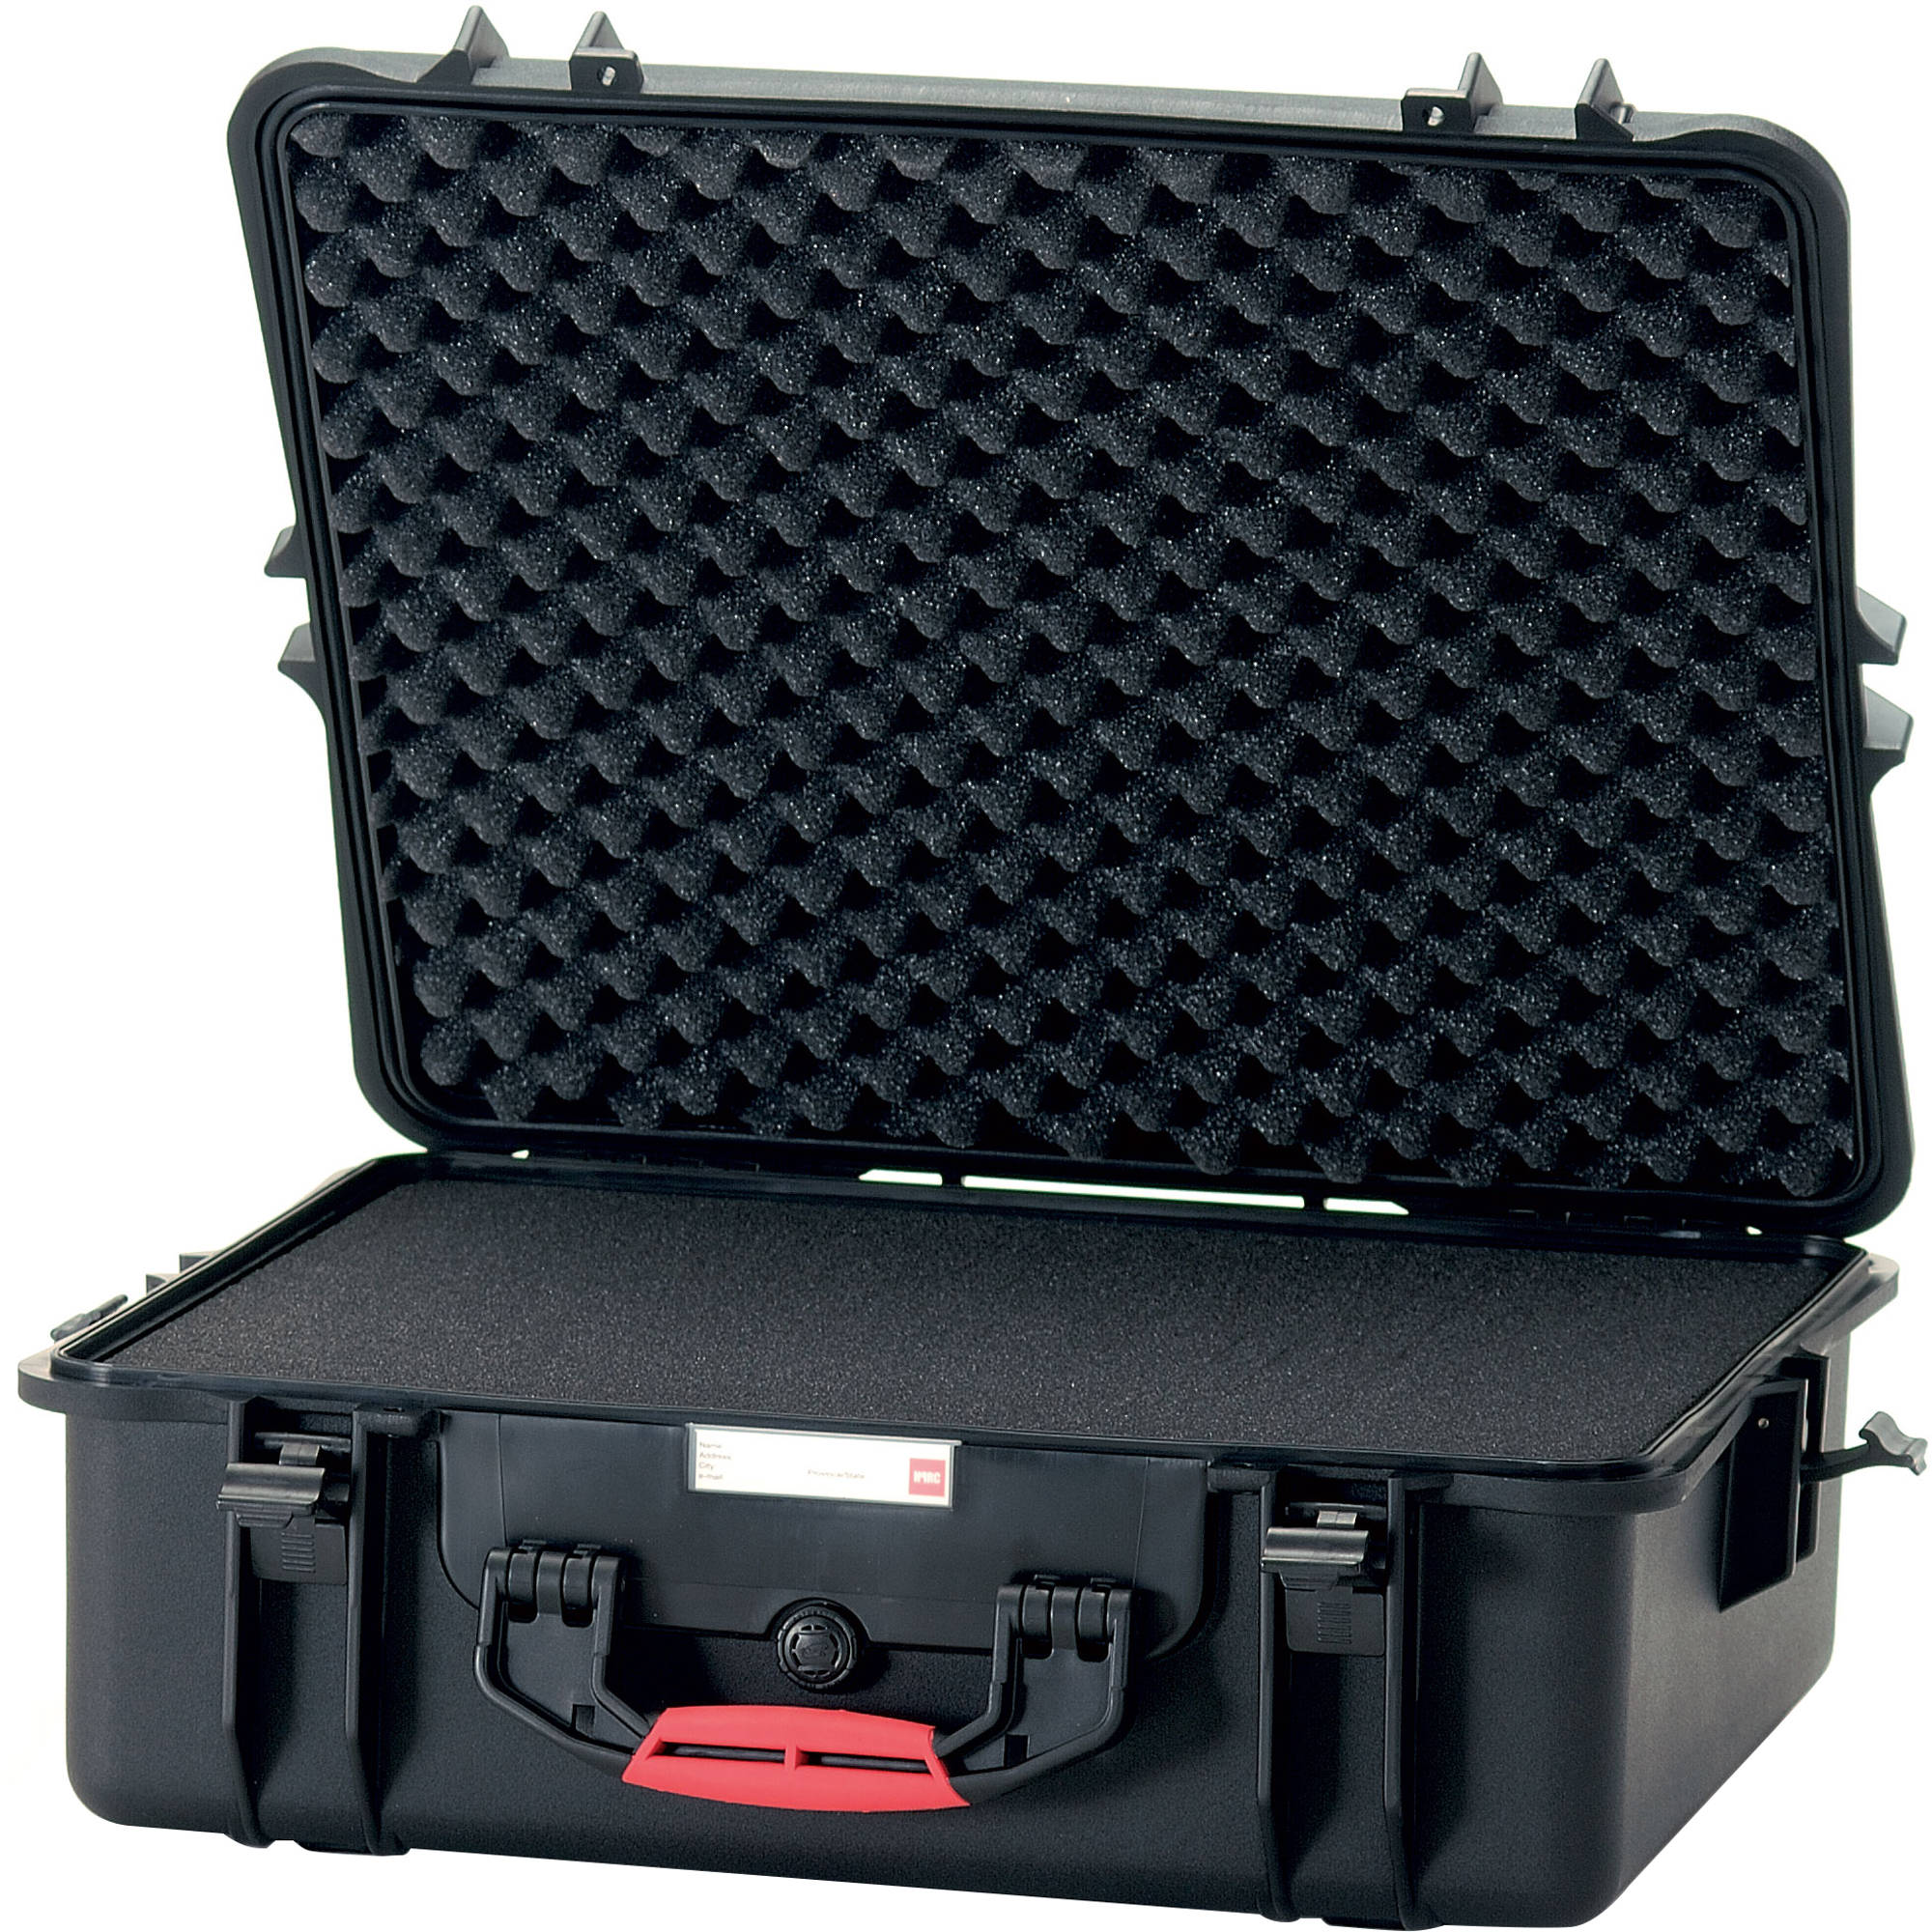 HPRC 2700 C (HPRC2700 CUBBLK) WATERPROOF HARD CASE WITH CUBED FOAM INTERIOR